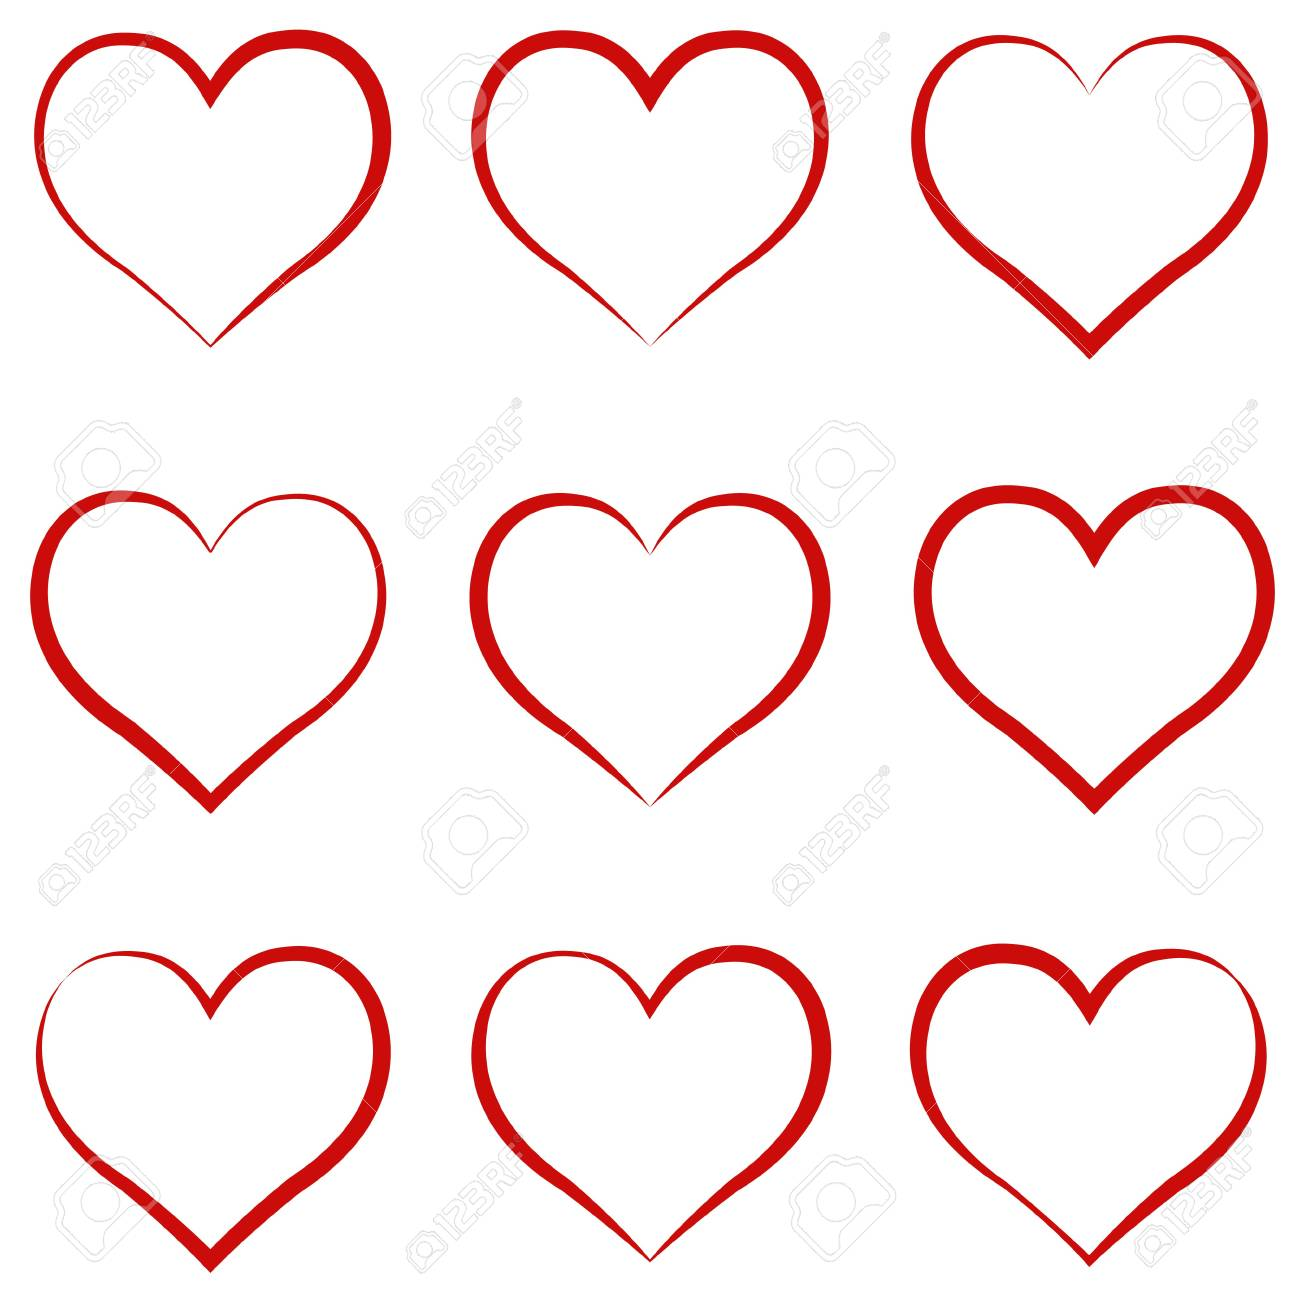 Heart outline red set symbol of the friendship and intimacy heart outline red set symbol of the friendship and intimacy of valentines day buycottarizona Image collections